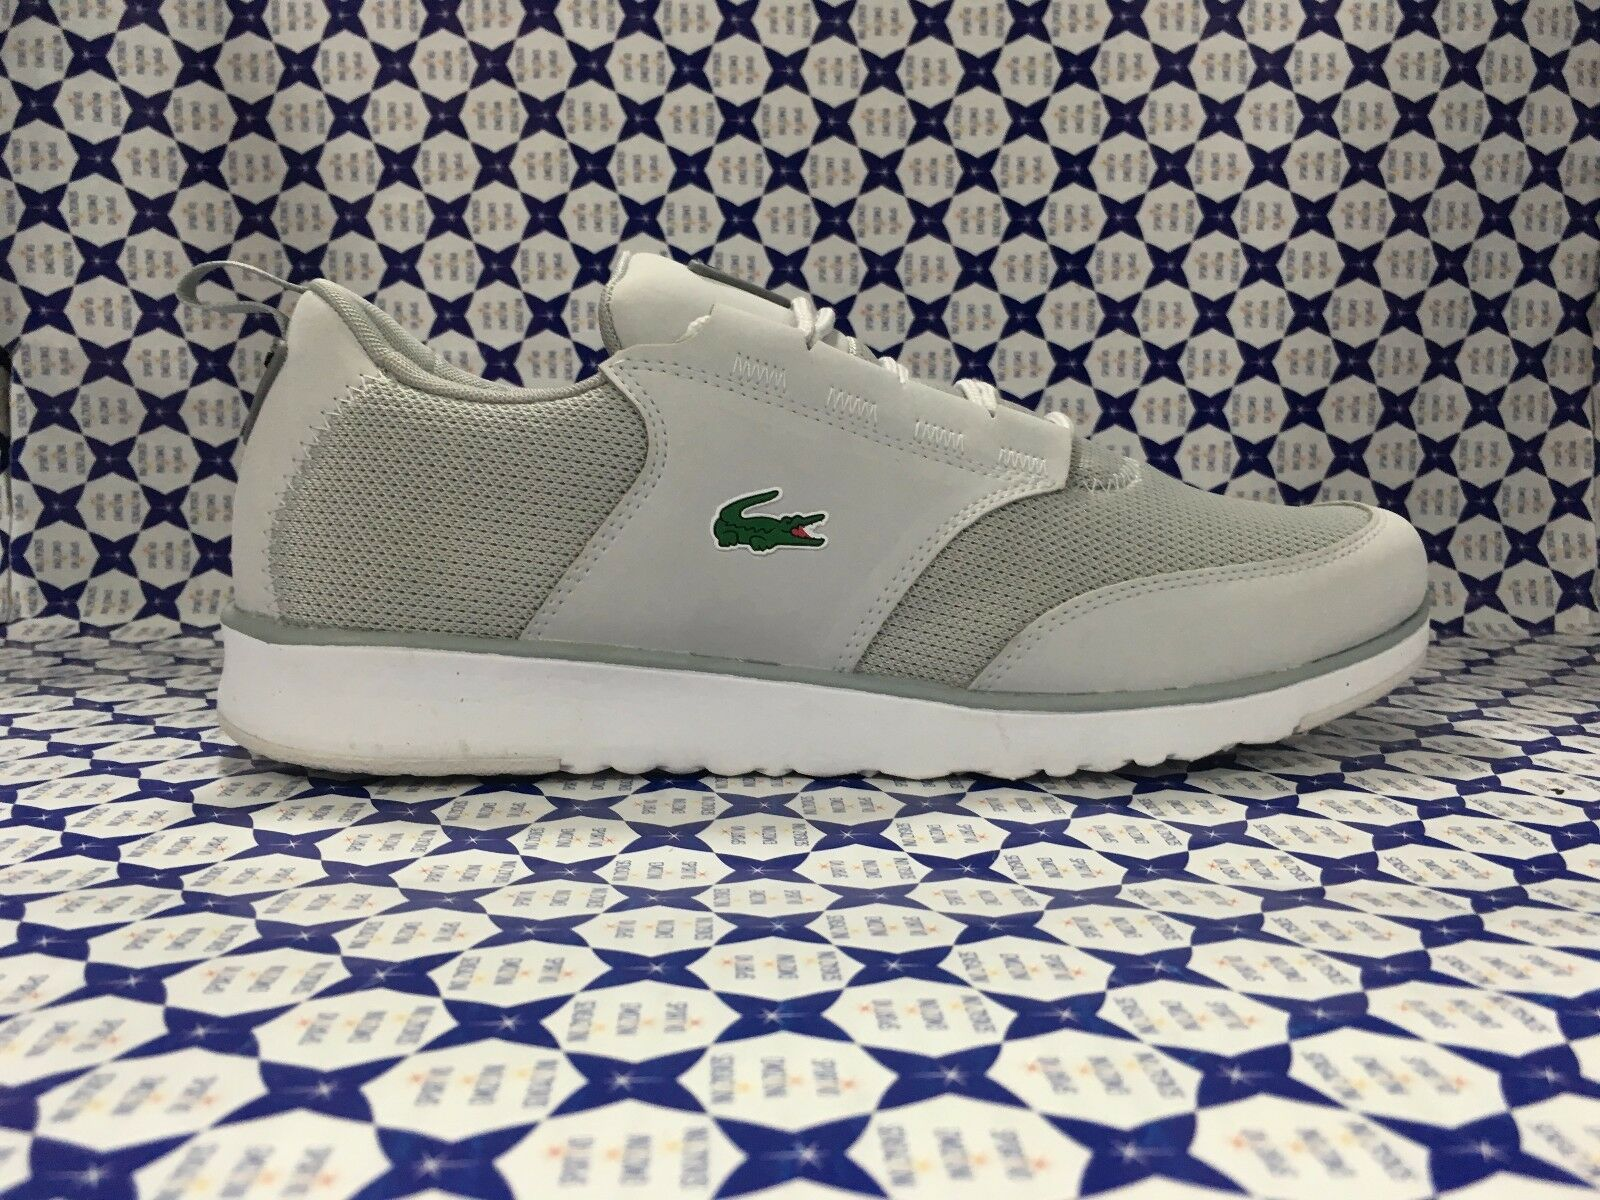 shoes LACOSTE men Sneakers Light 217 1 - grey - SPM1024